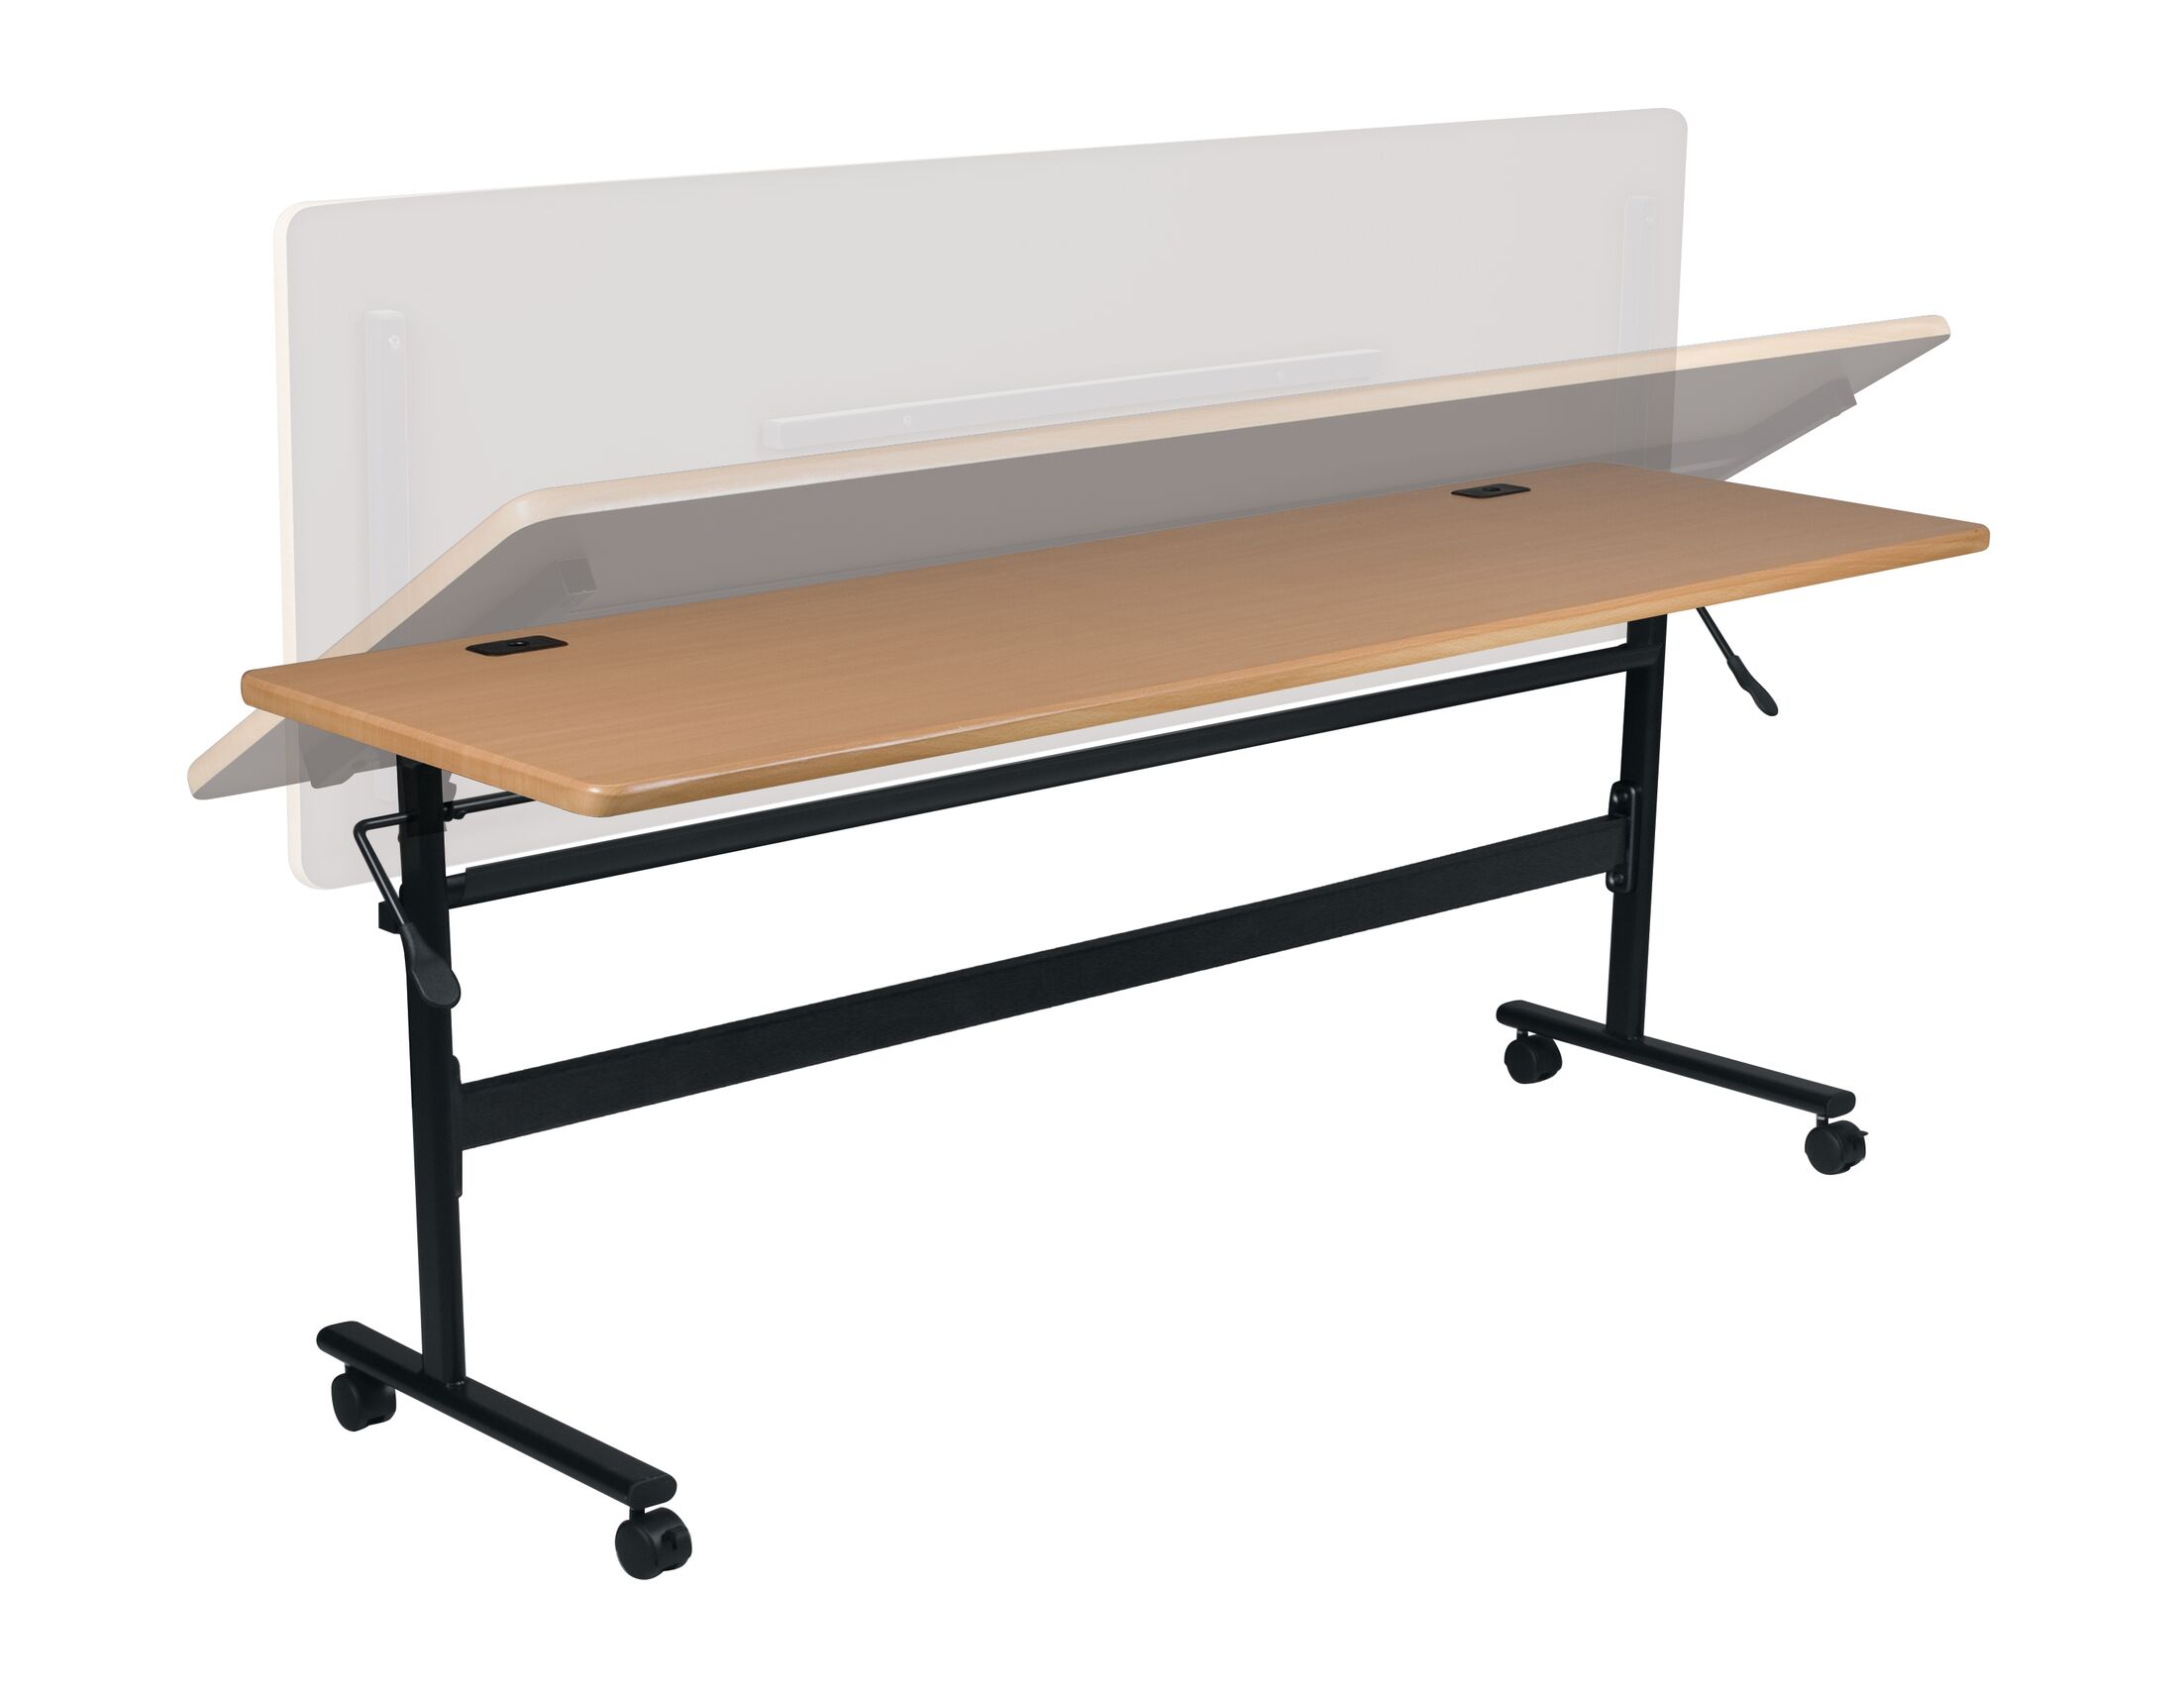 Economy Flipper Training Table with Wheels Size: 60